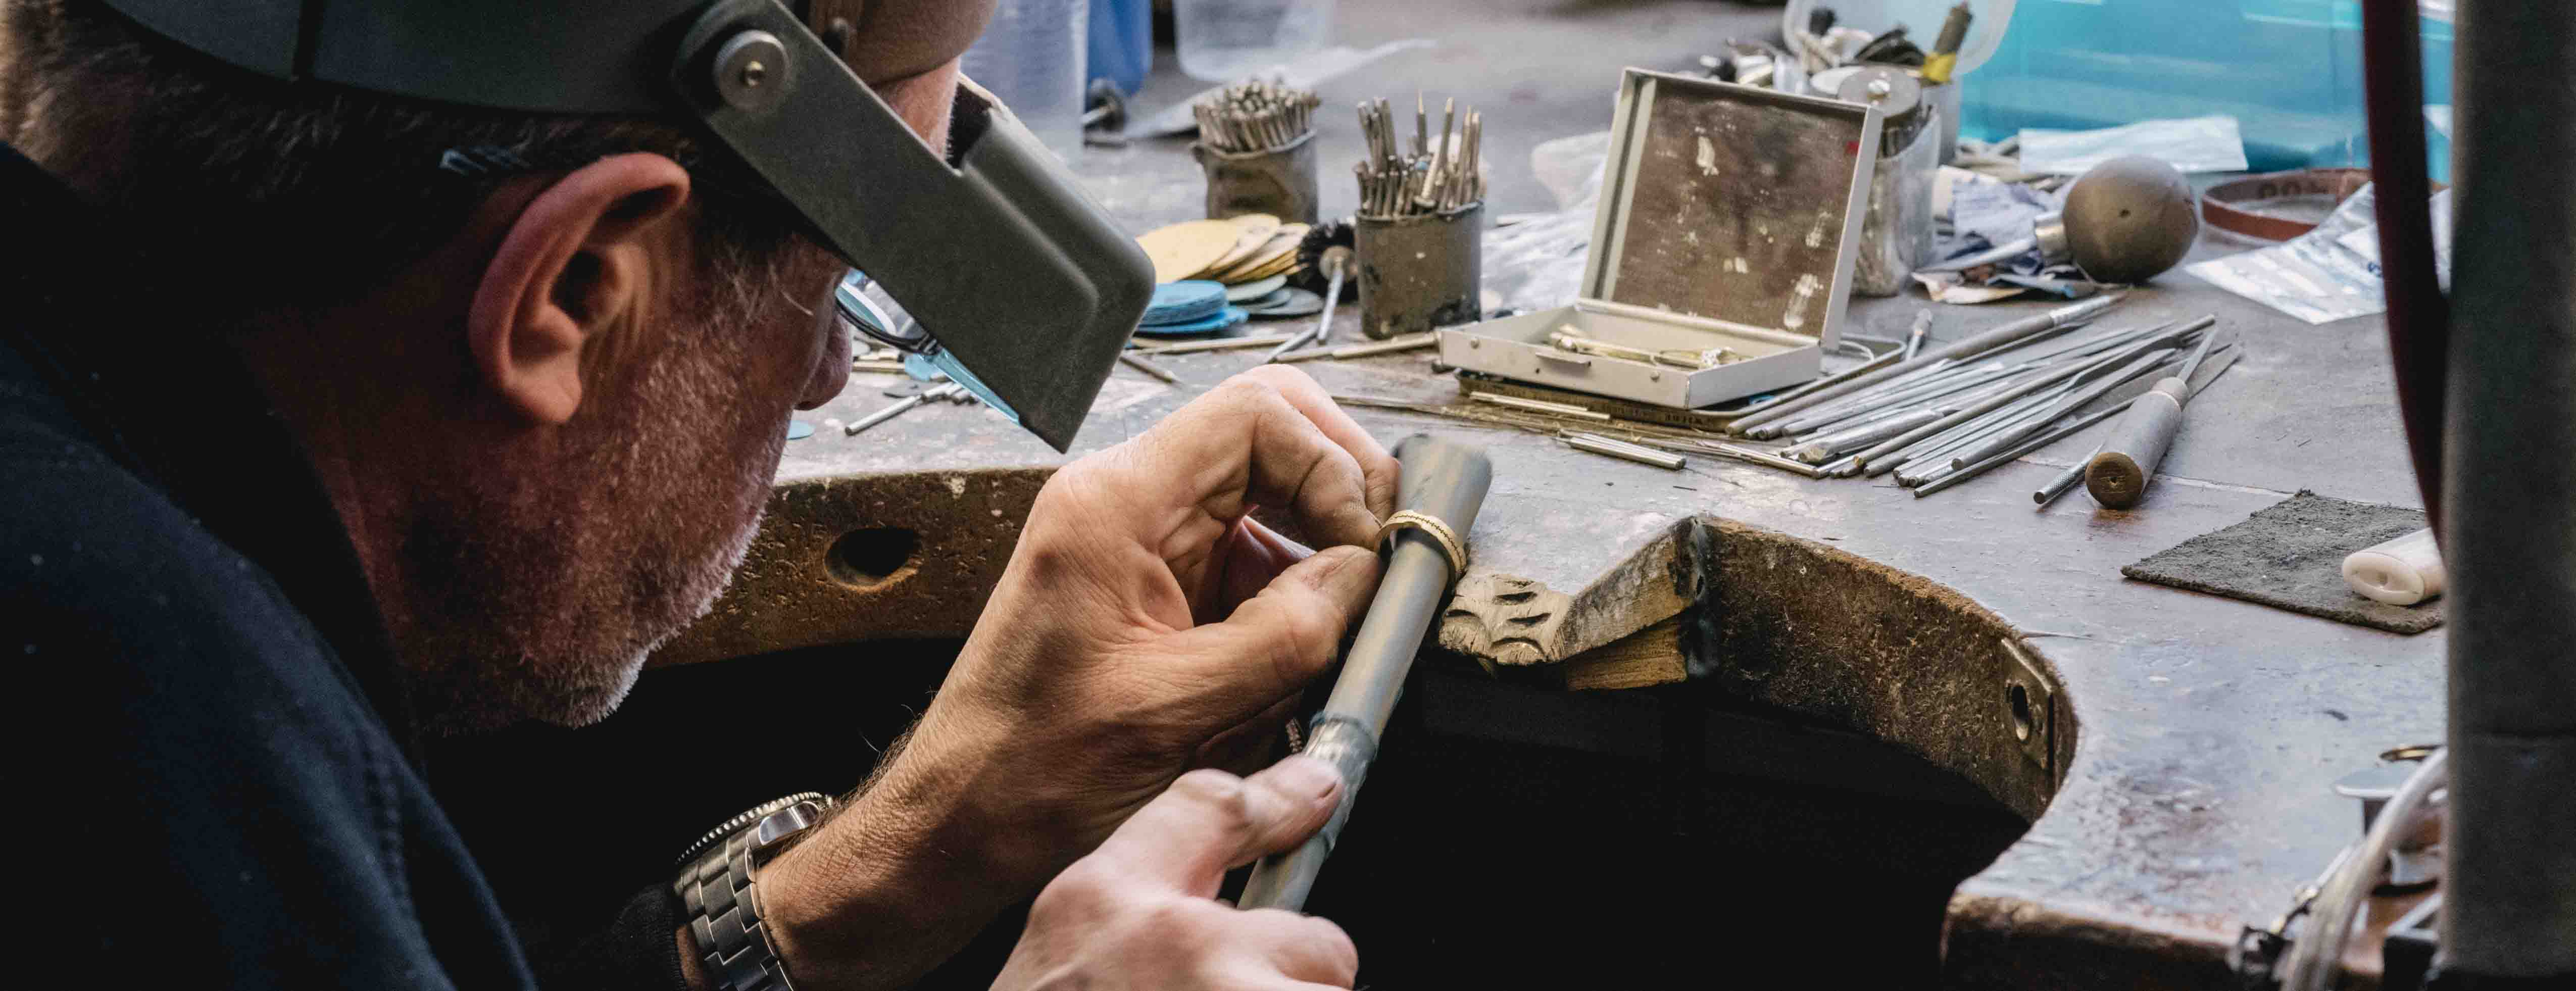 A goldsmith works on a ring at the Hockley Mint workshop in Birmingham